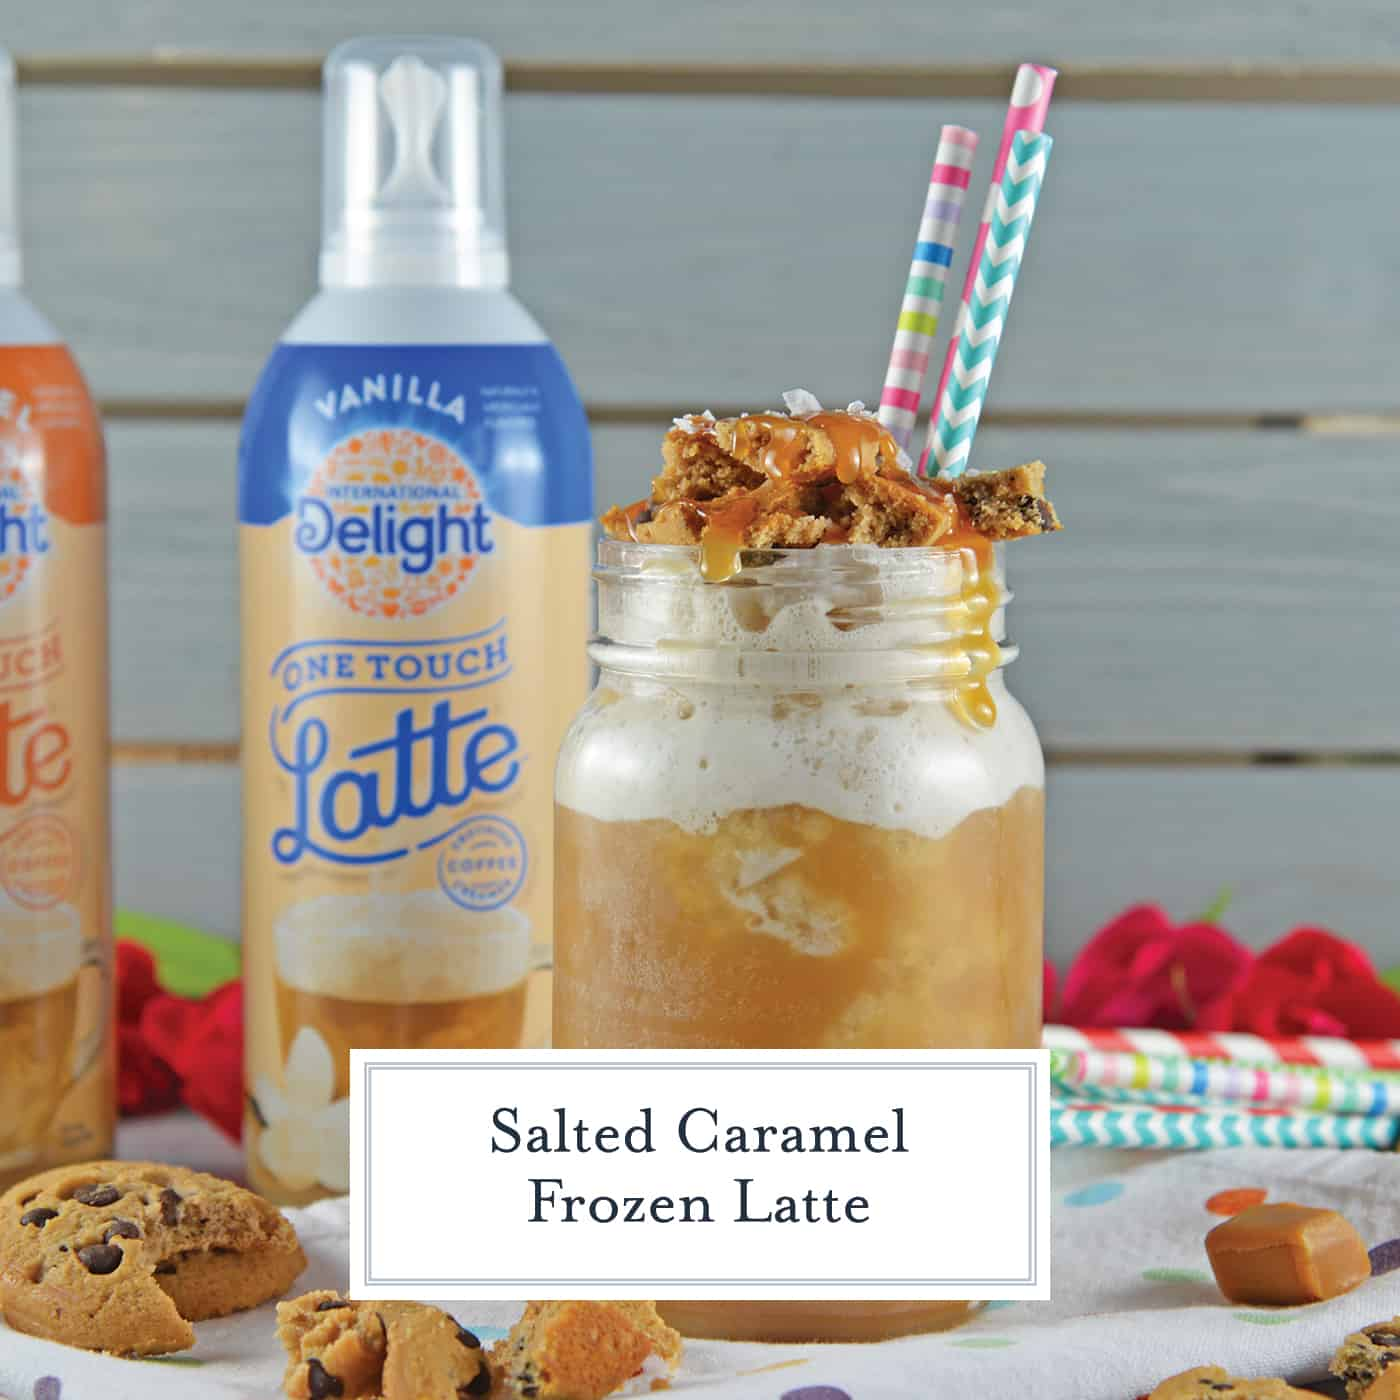 Salted Caramel Cookie Frozen Latte has the best of all worlds. Fresh coffee flavor with lightly sweetened latte froth, salty, gooey caramel and soft chocolate chip cookies. #coffeedrinks #homemadelattes www.savoryexperiments.com